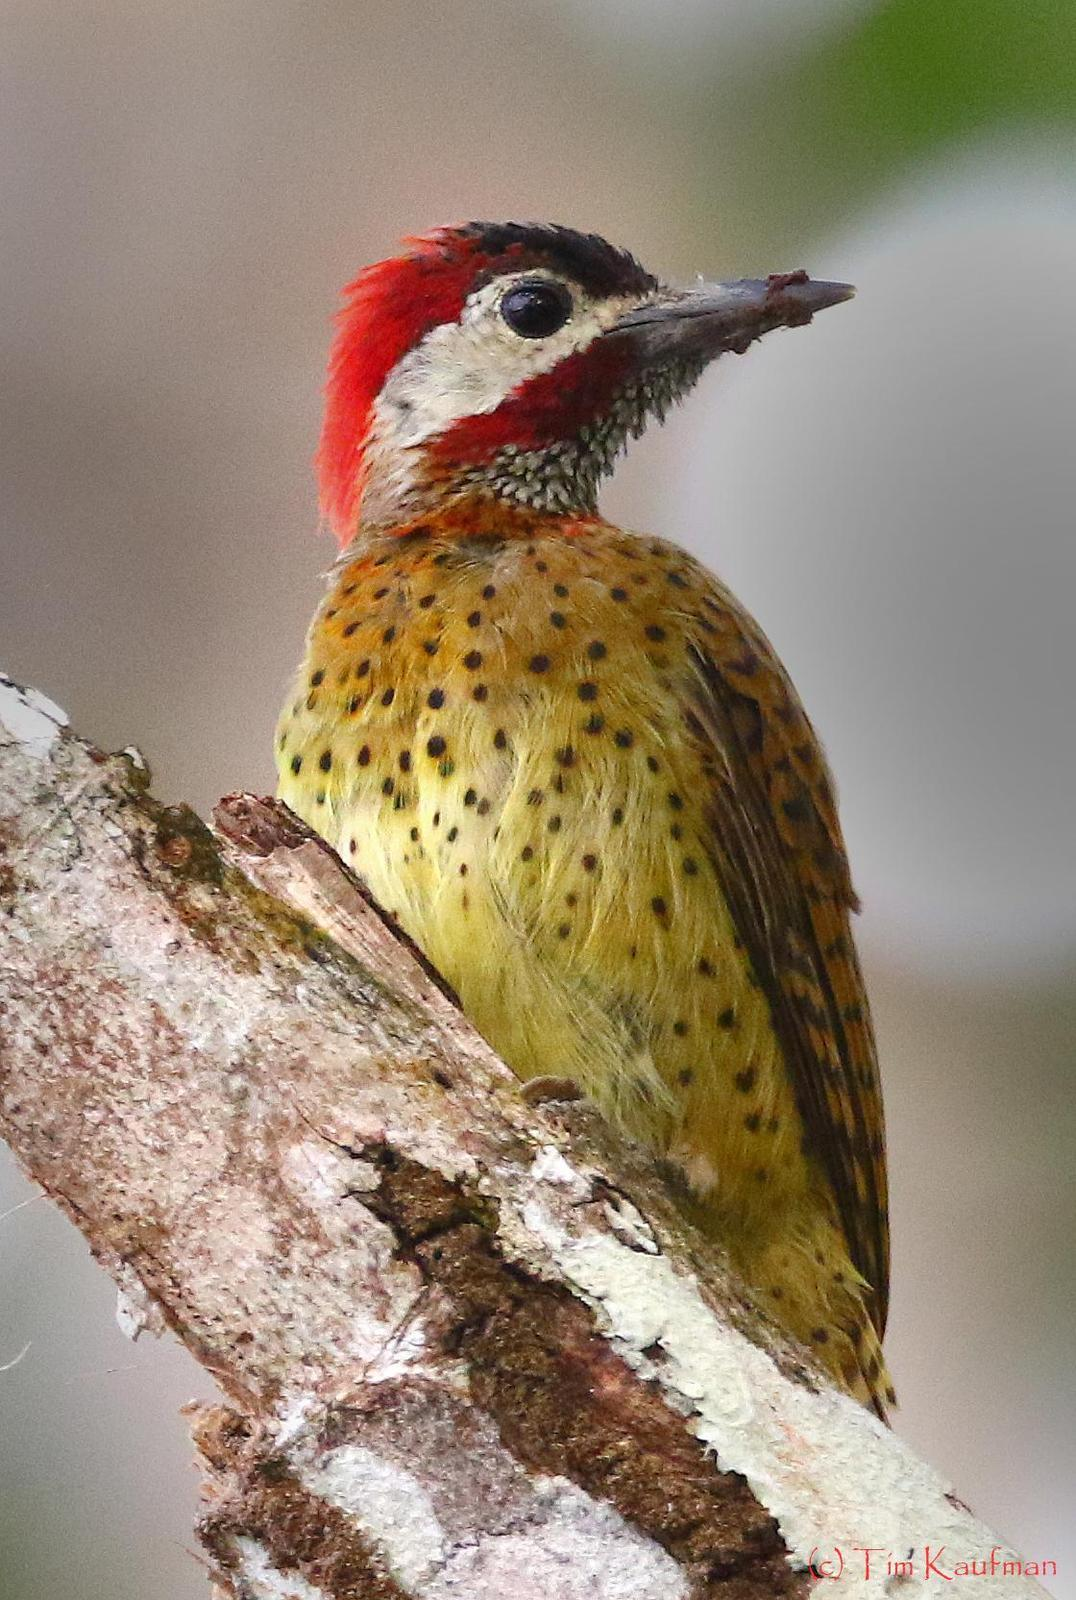 Spot-breasted Woodpecker Photo by Tim Kaufman